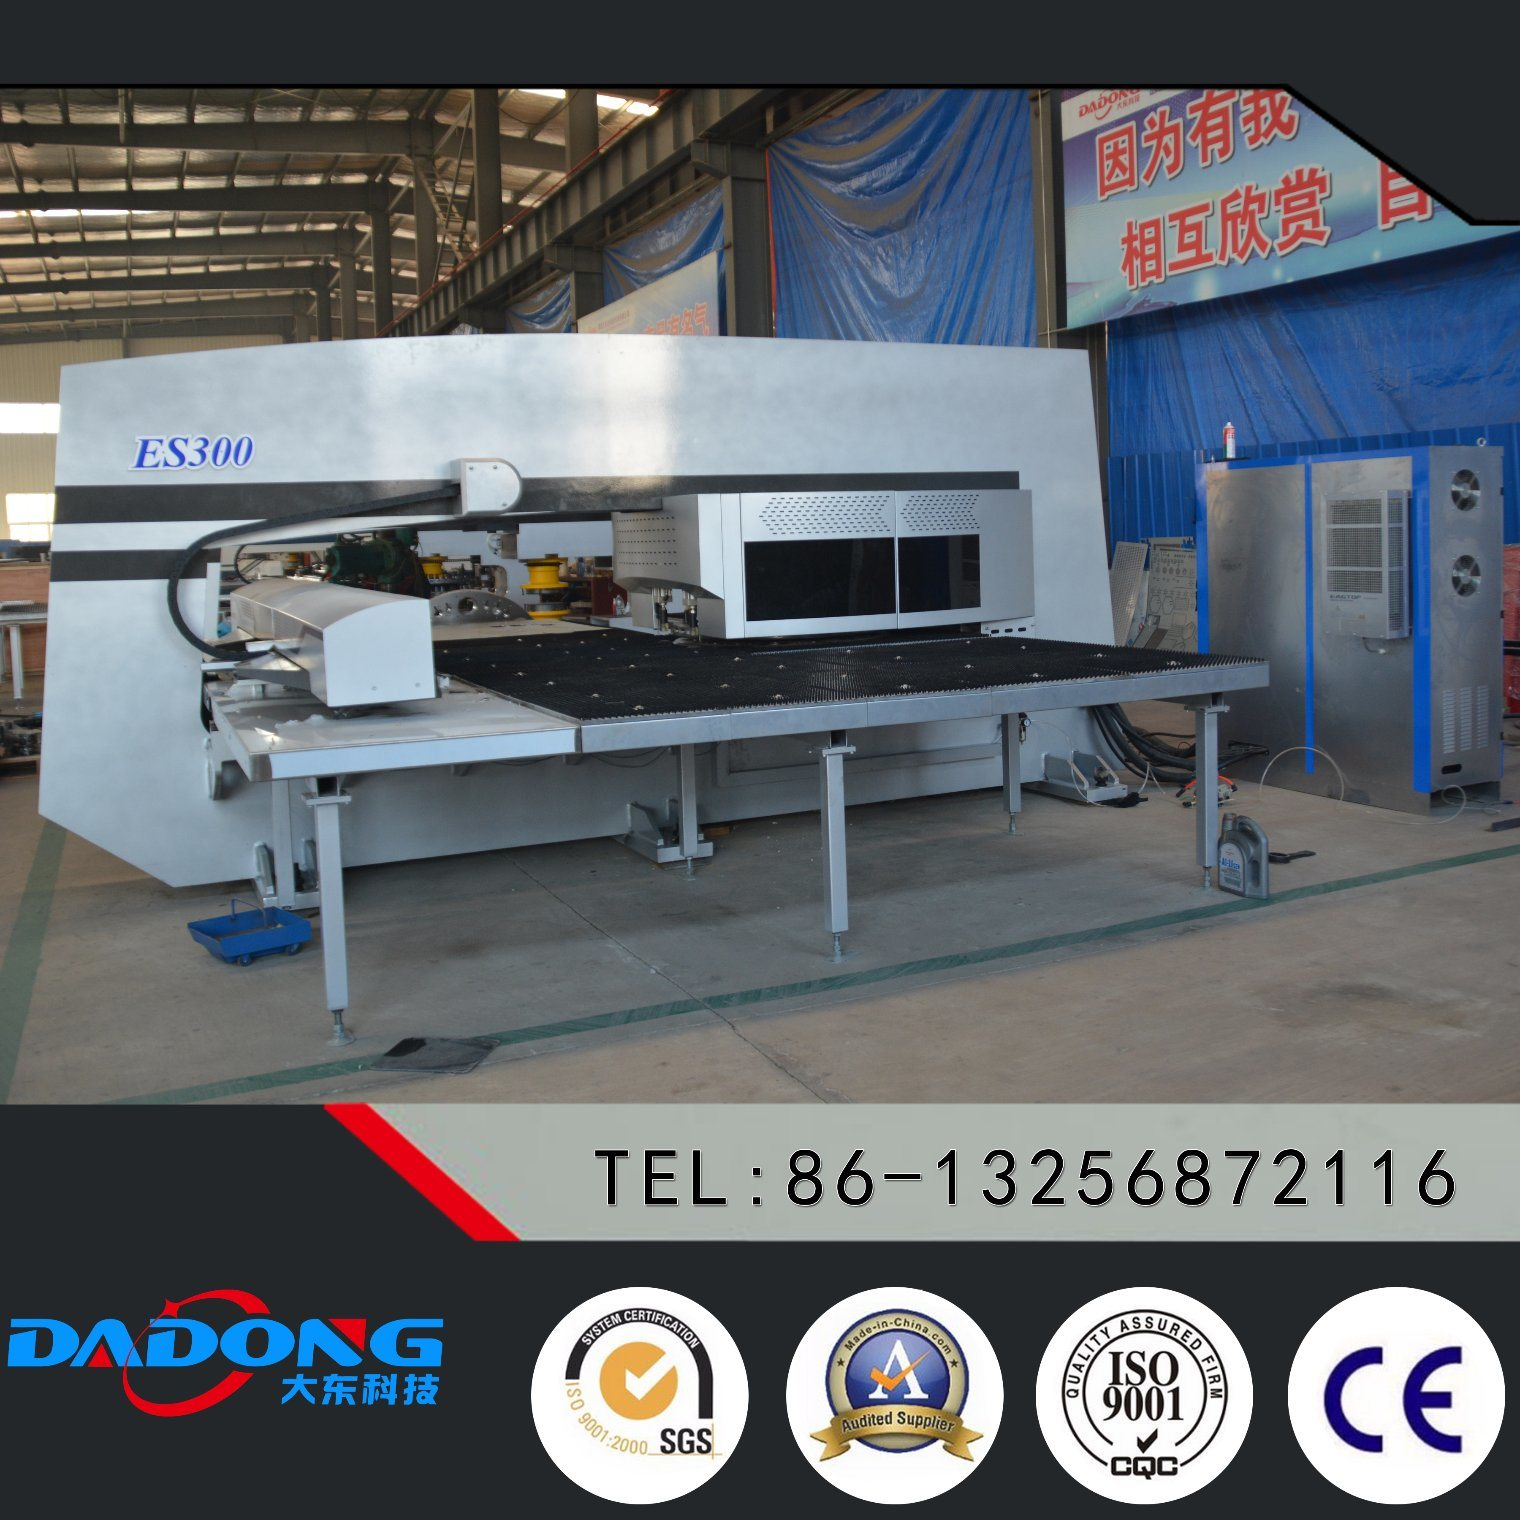 Es300 Quality CNC Servo Punching Machine/Punch Press with Ce Certificate